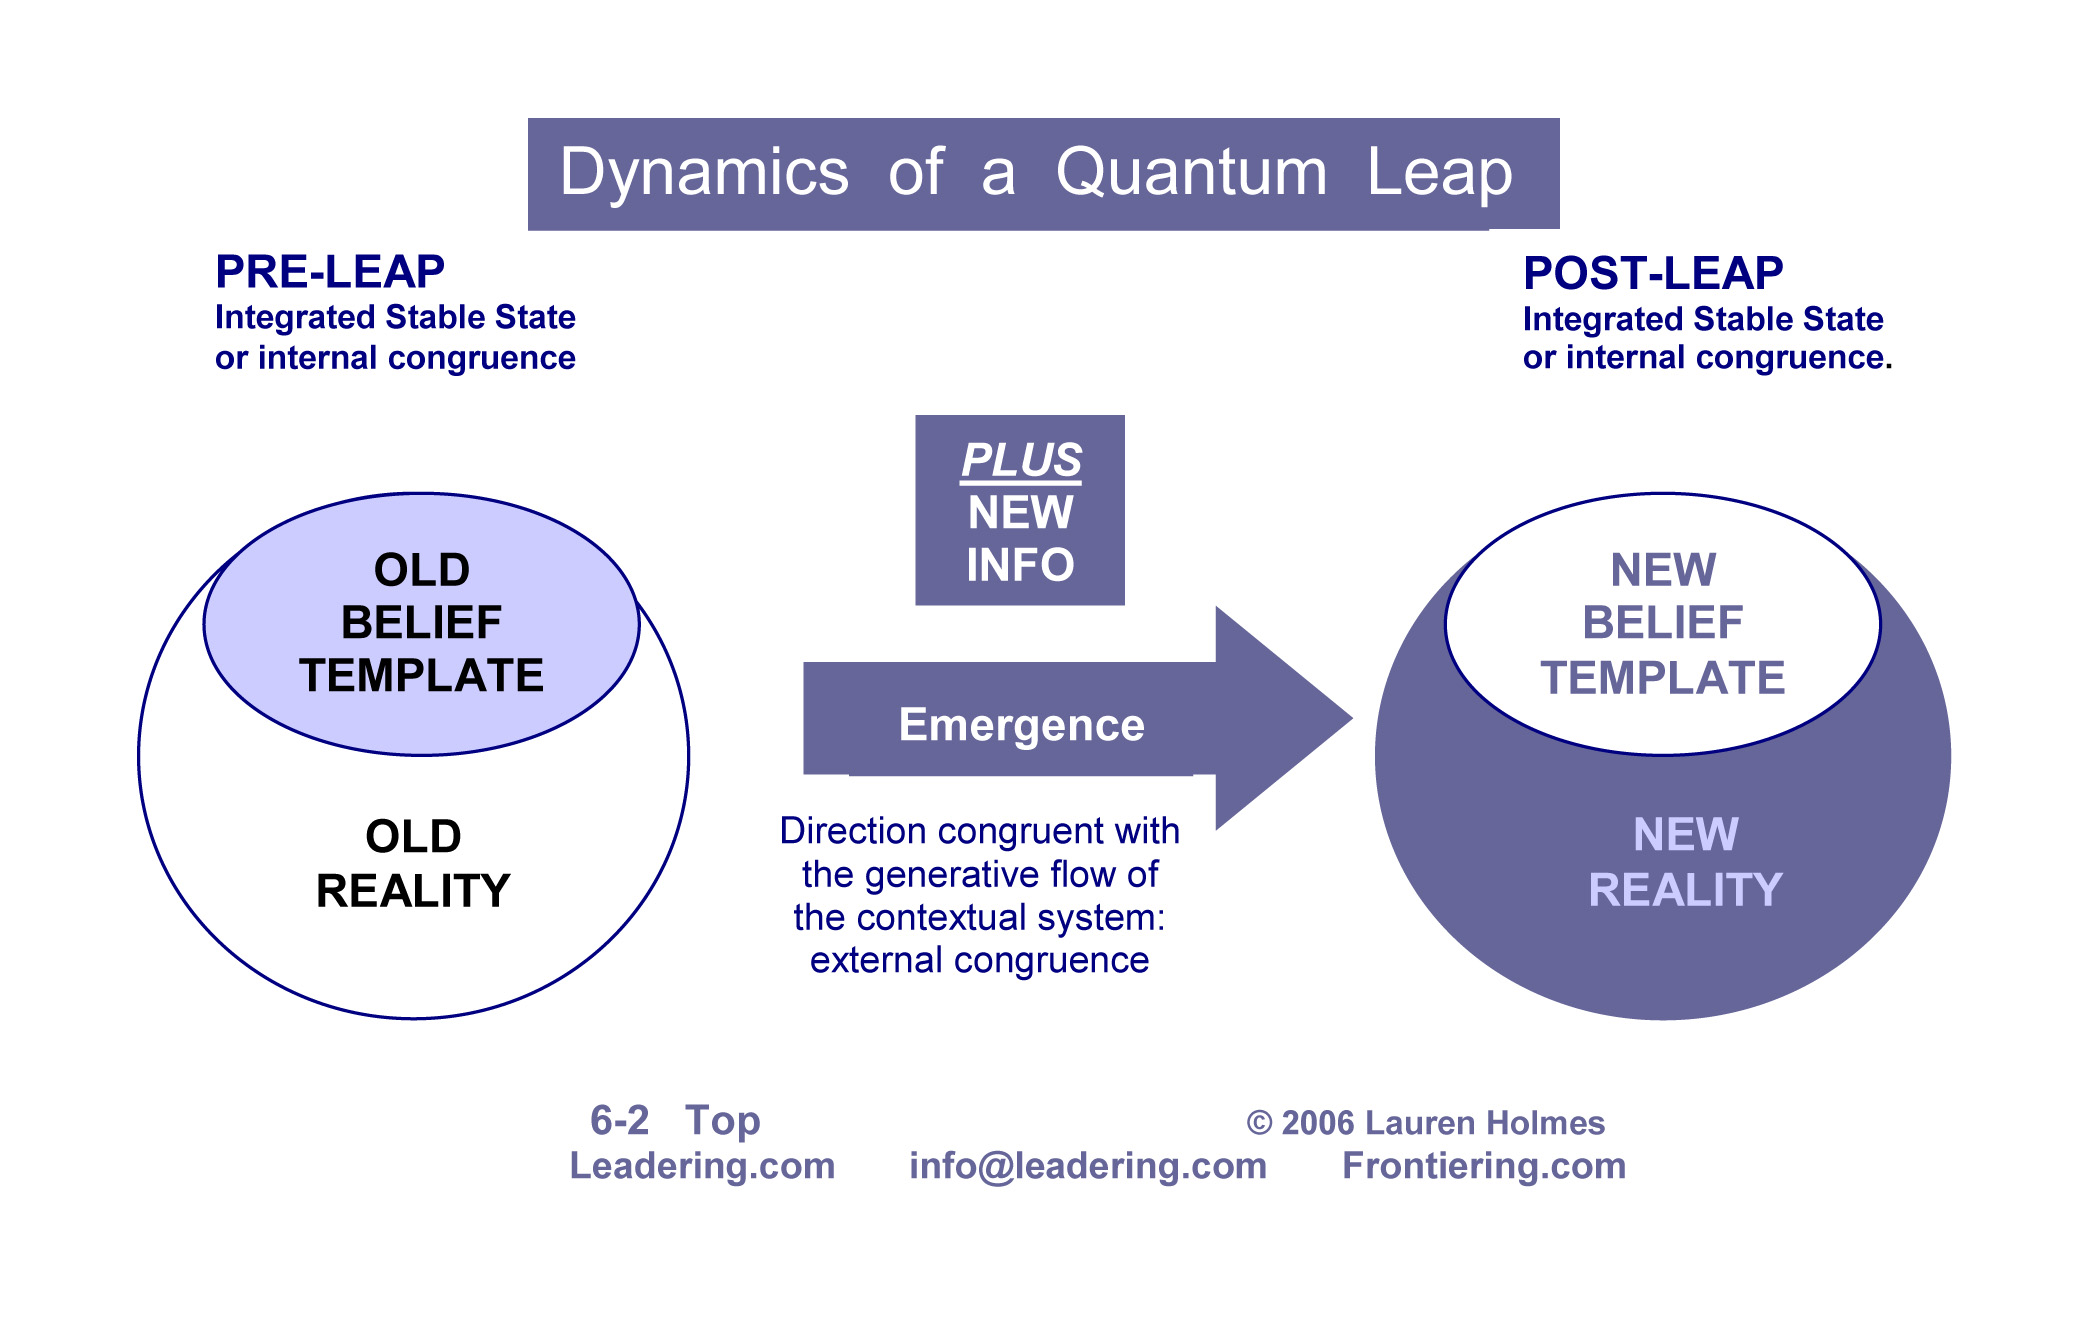 QUANTUM LEAP DIAGRAM